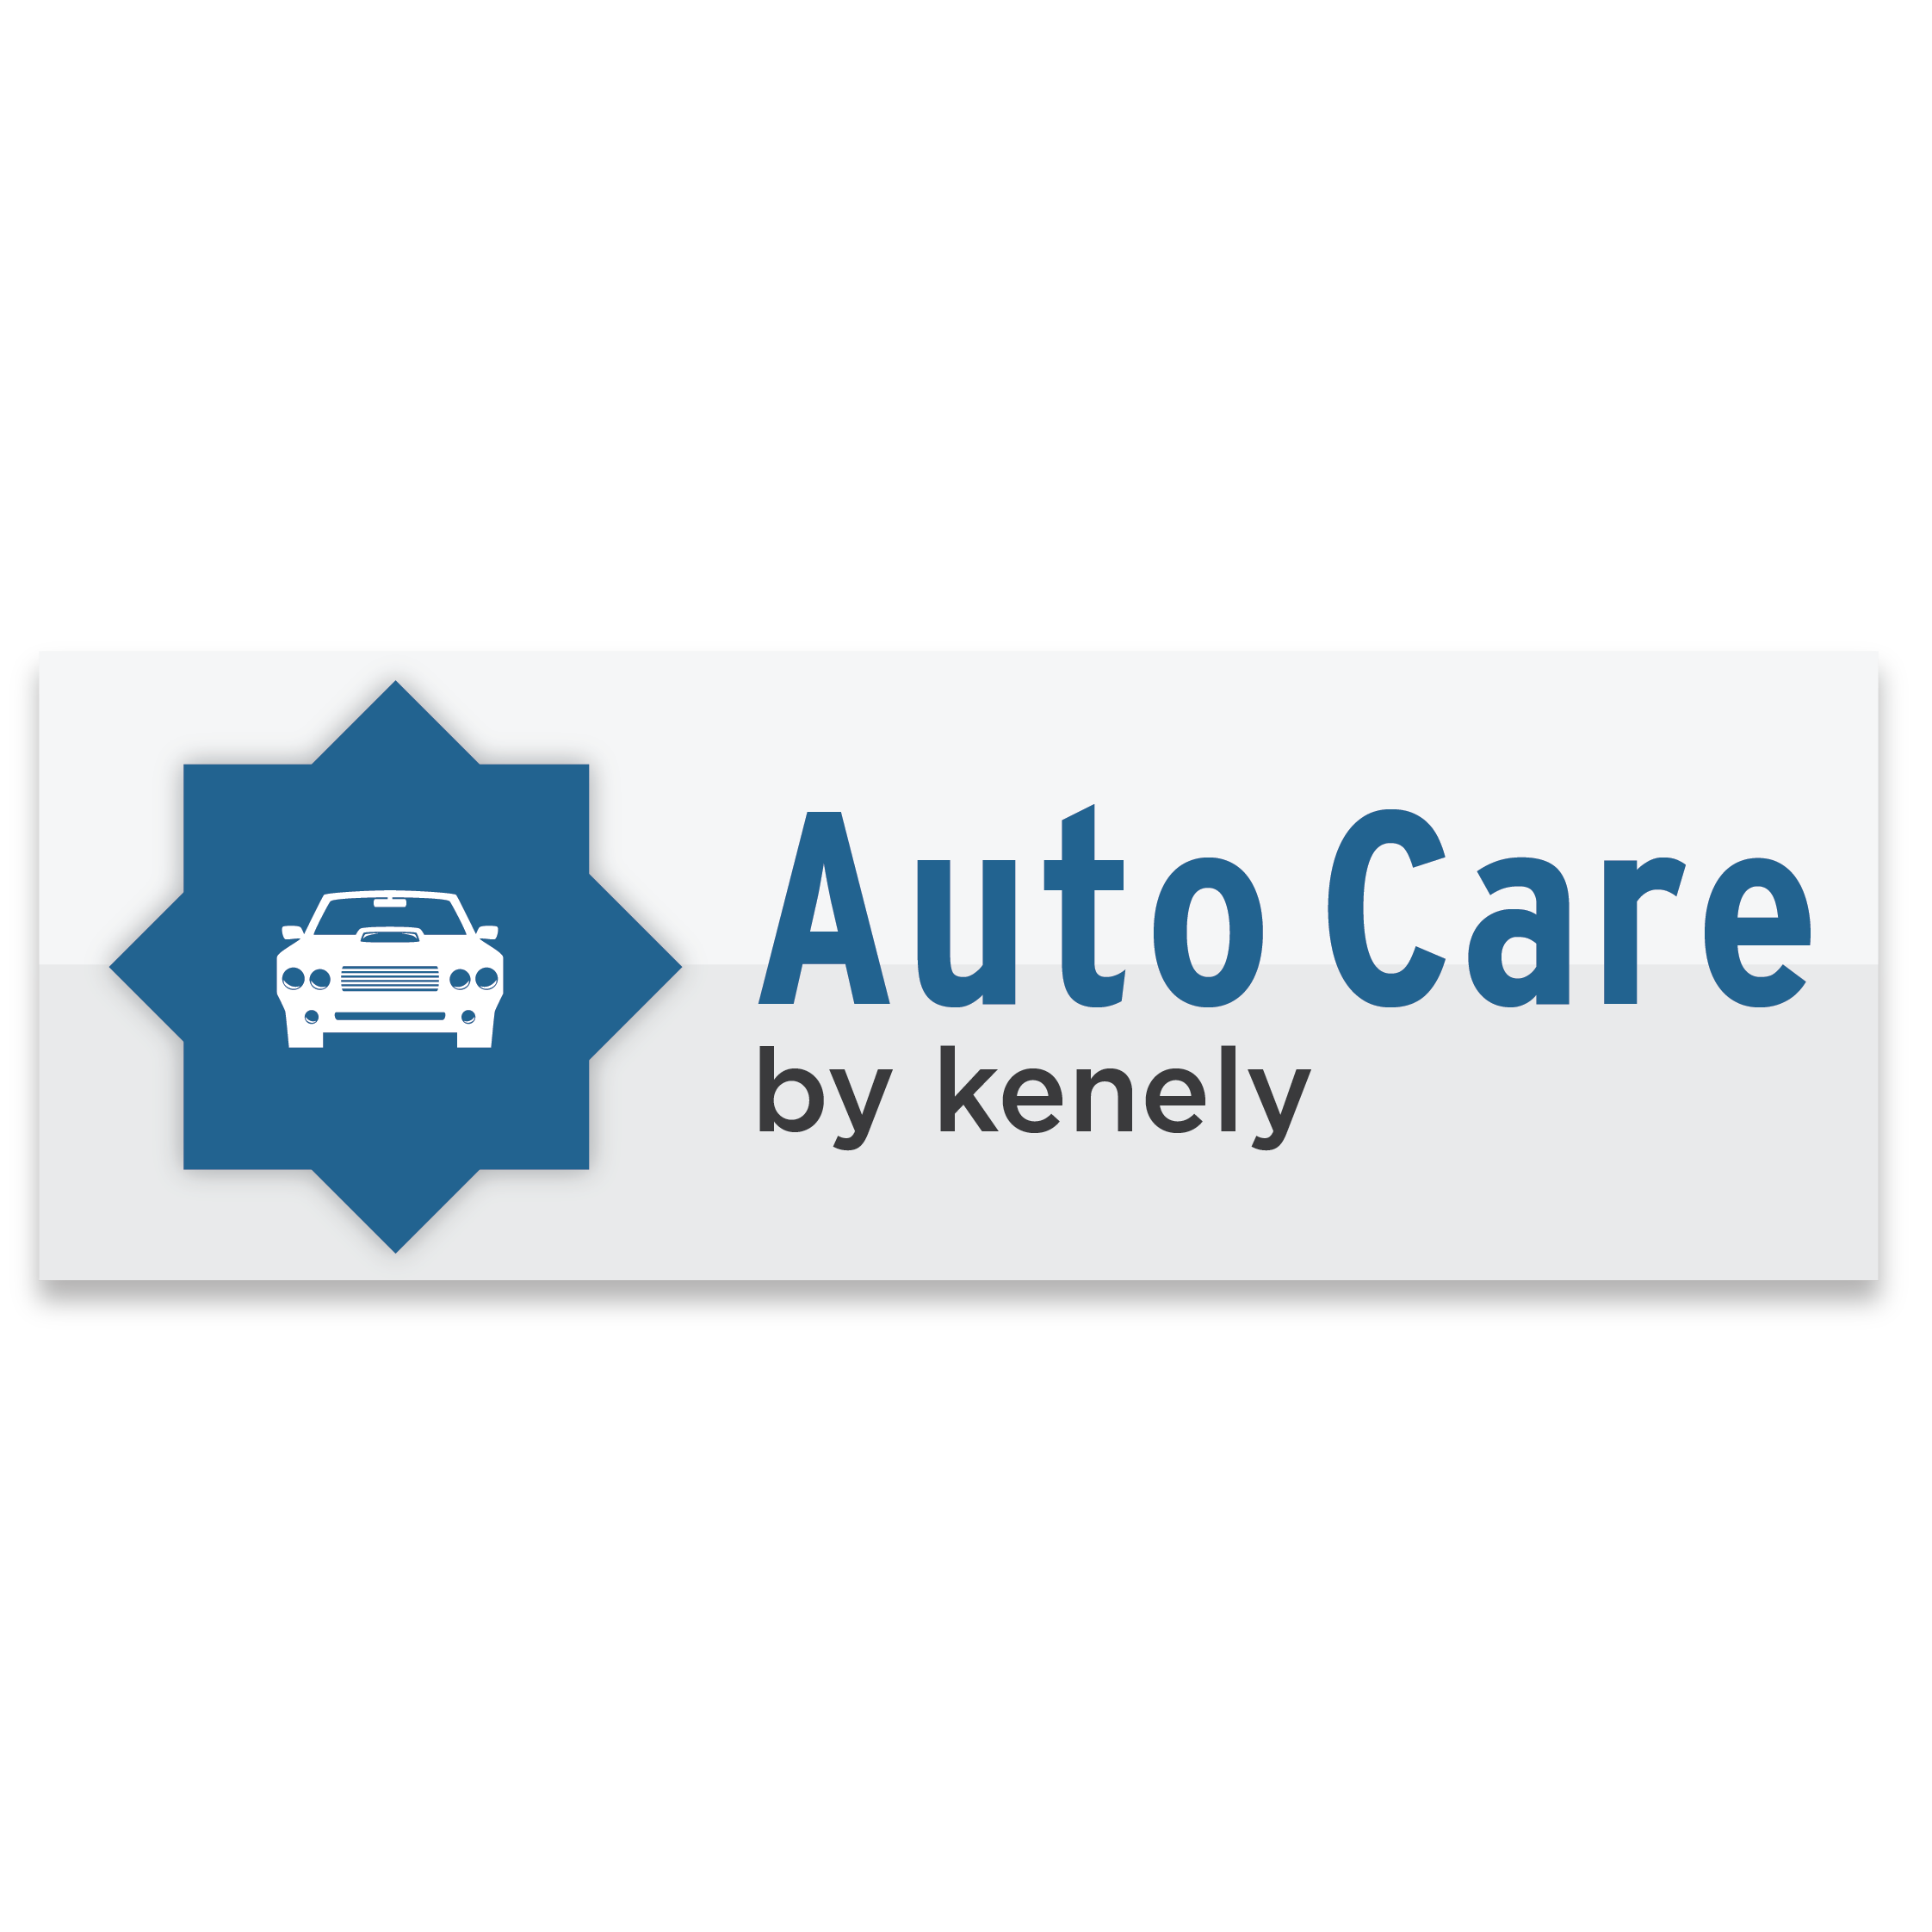 Auto Care By Kenely, Inc - Orangevale, CA - General Auto Repair & Service